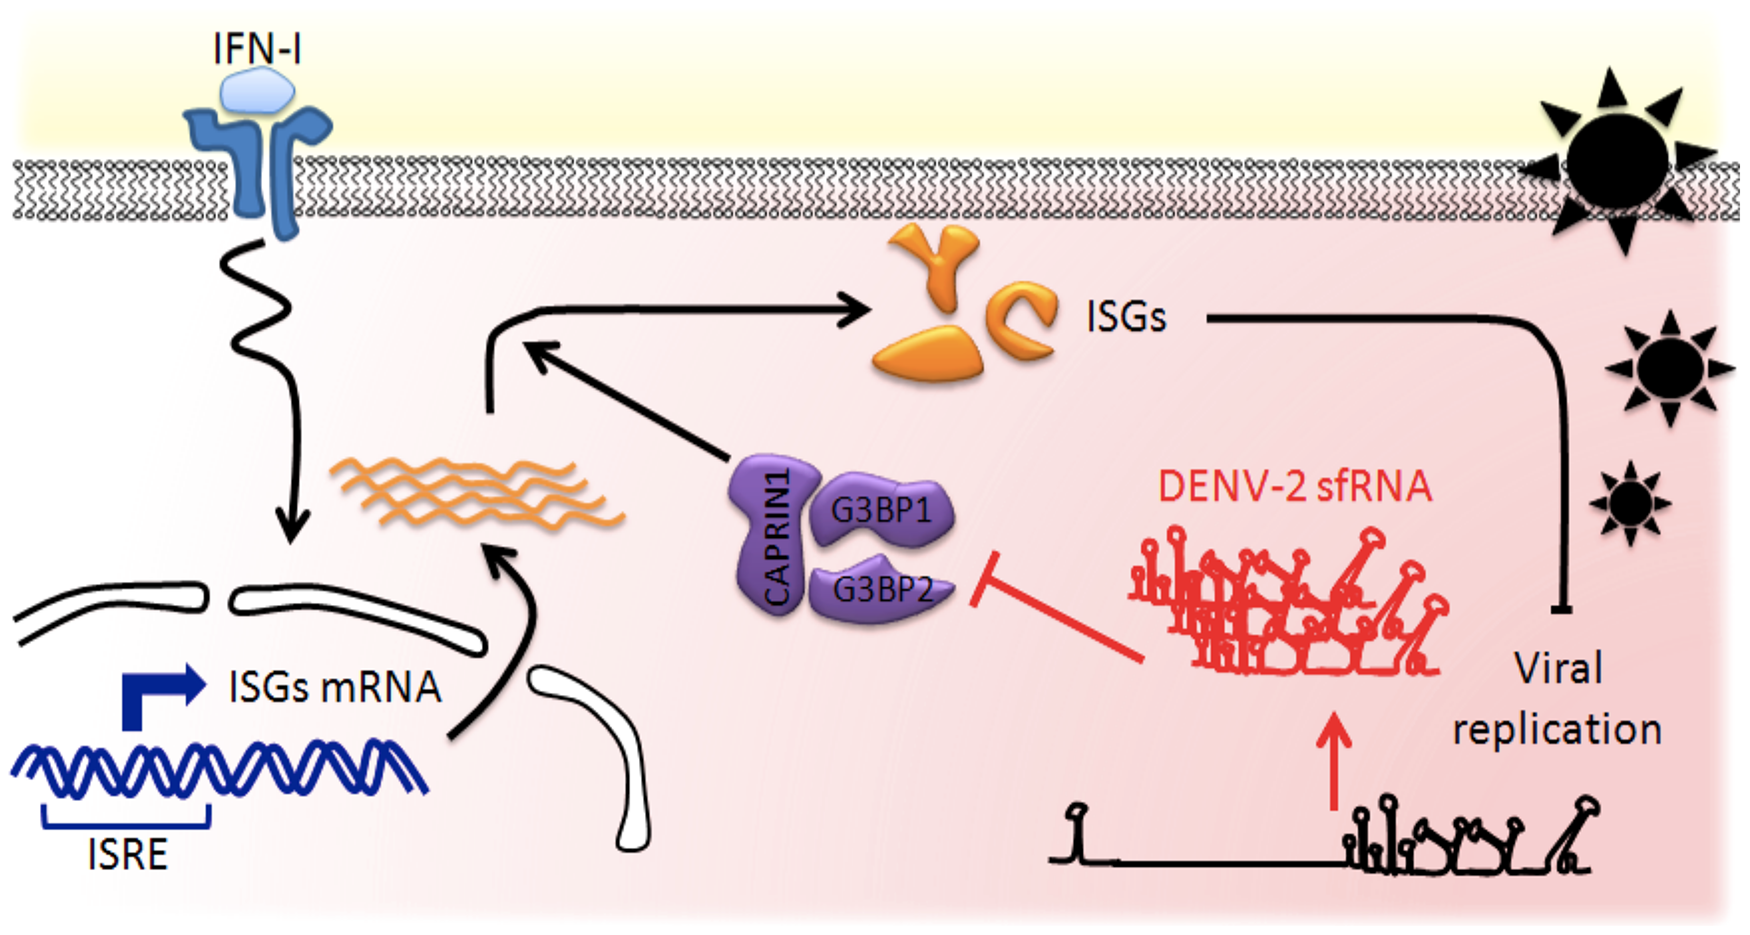 Model of the DENV-2 sfRNA antagonizing IFN action.